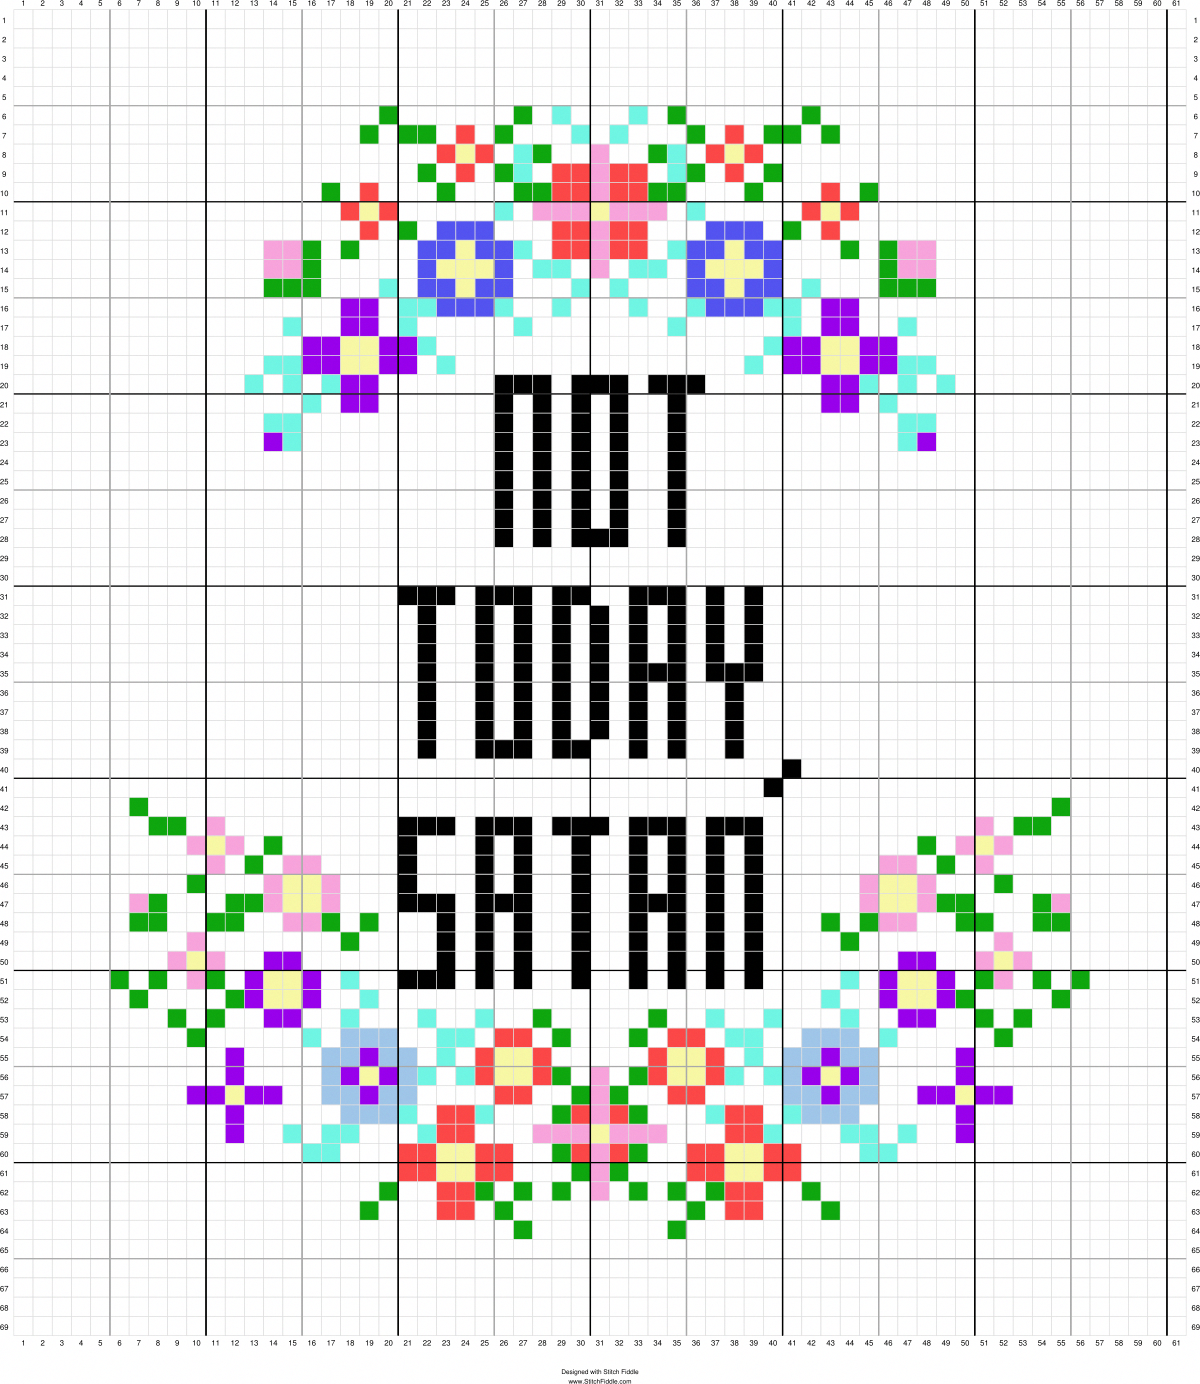 Patterns Of Hand Embroidery Countedcrossstitches 2020 Cross